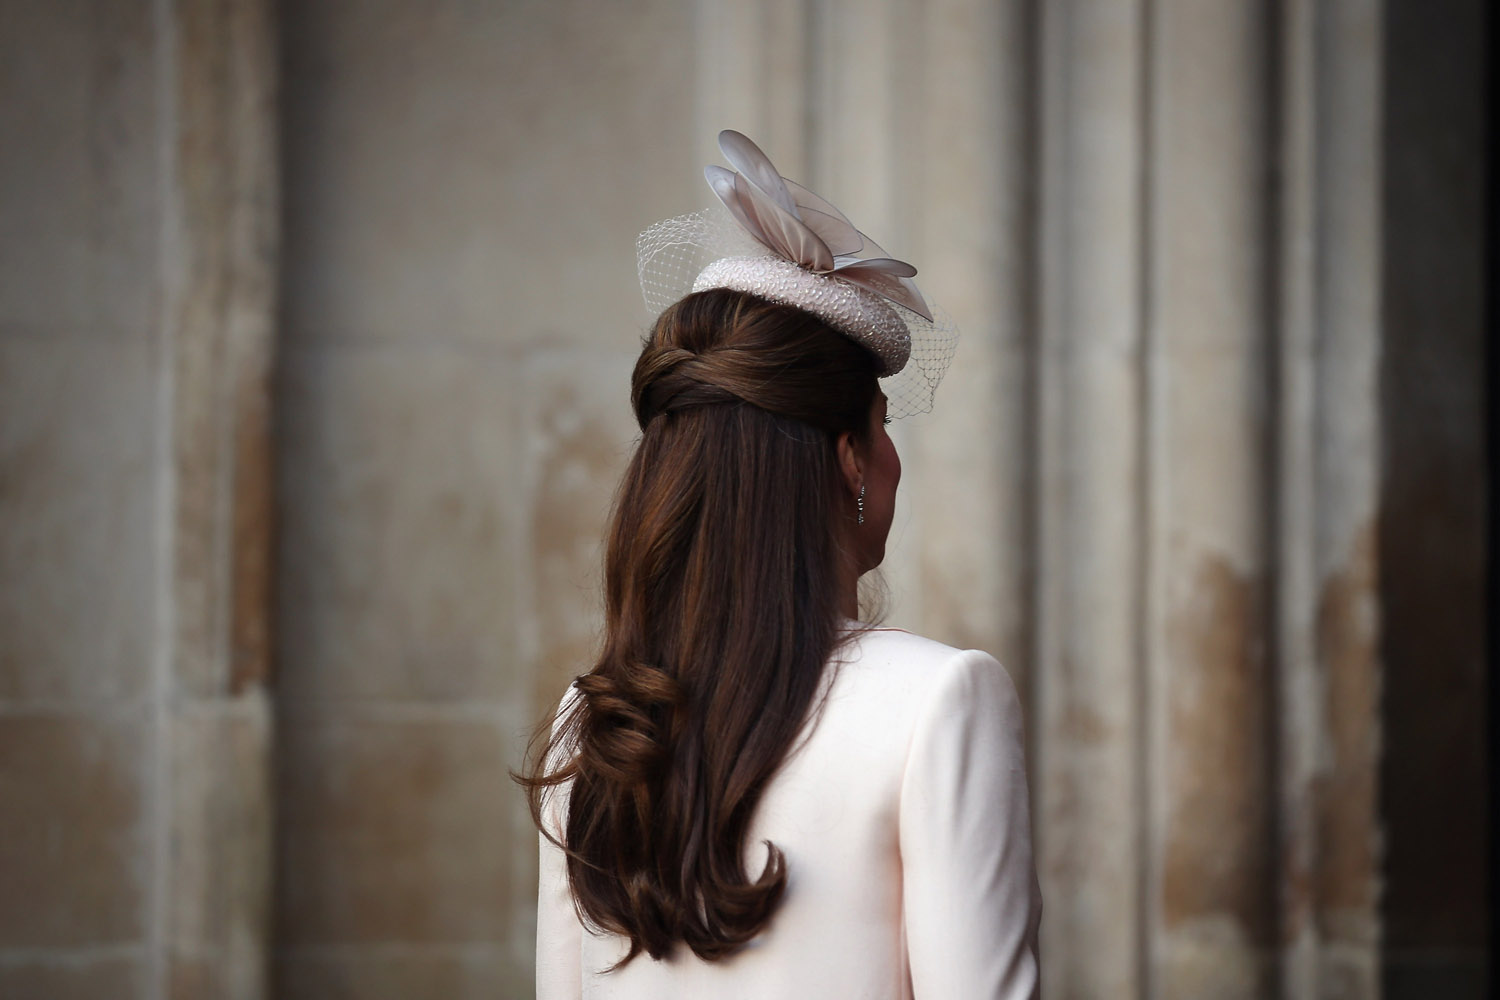 June 4, 2013. Catherine, Duchess of Cambridge, arrives for a service of celebration to mark the 60th anniversary of the Coronation of Queen Elizabeth II at Westminster Abbey in London.